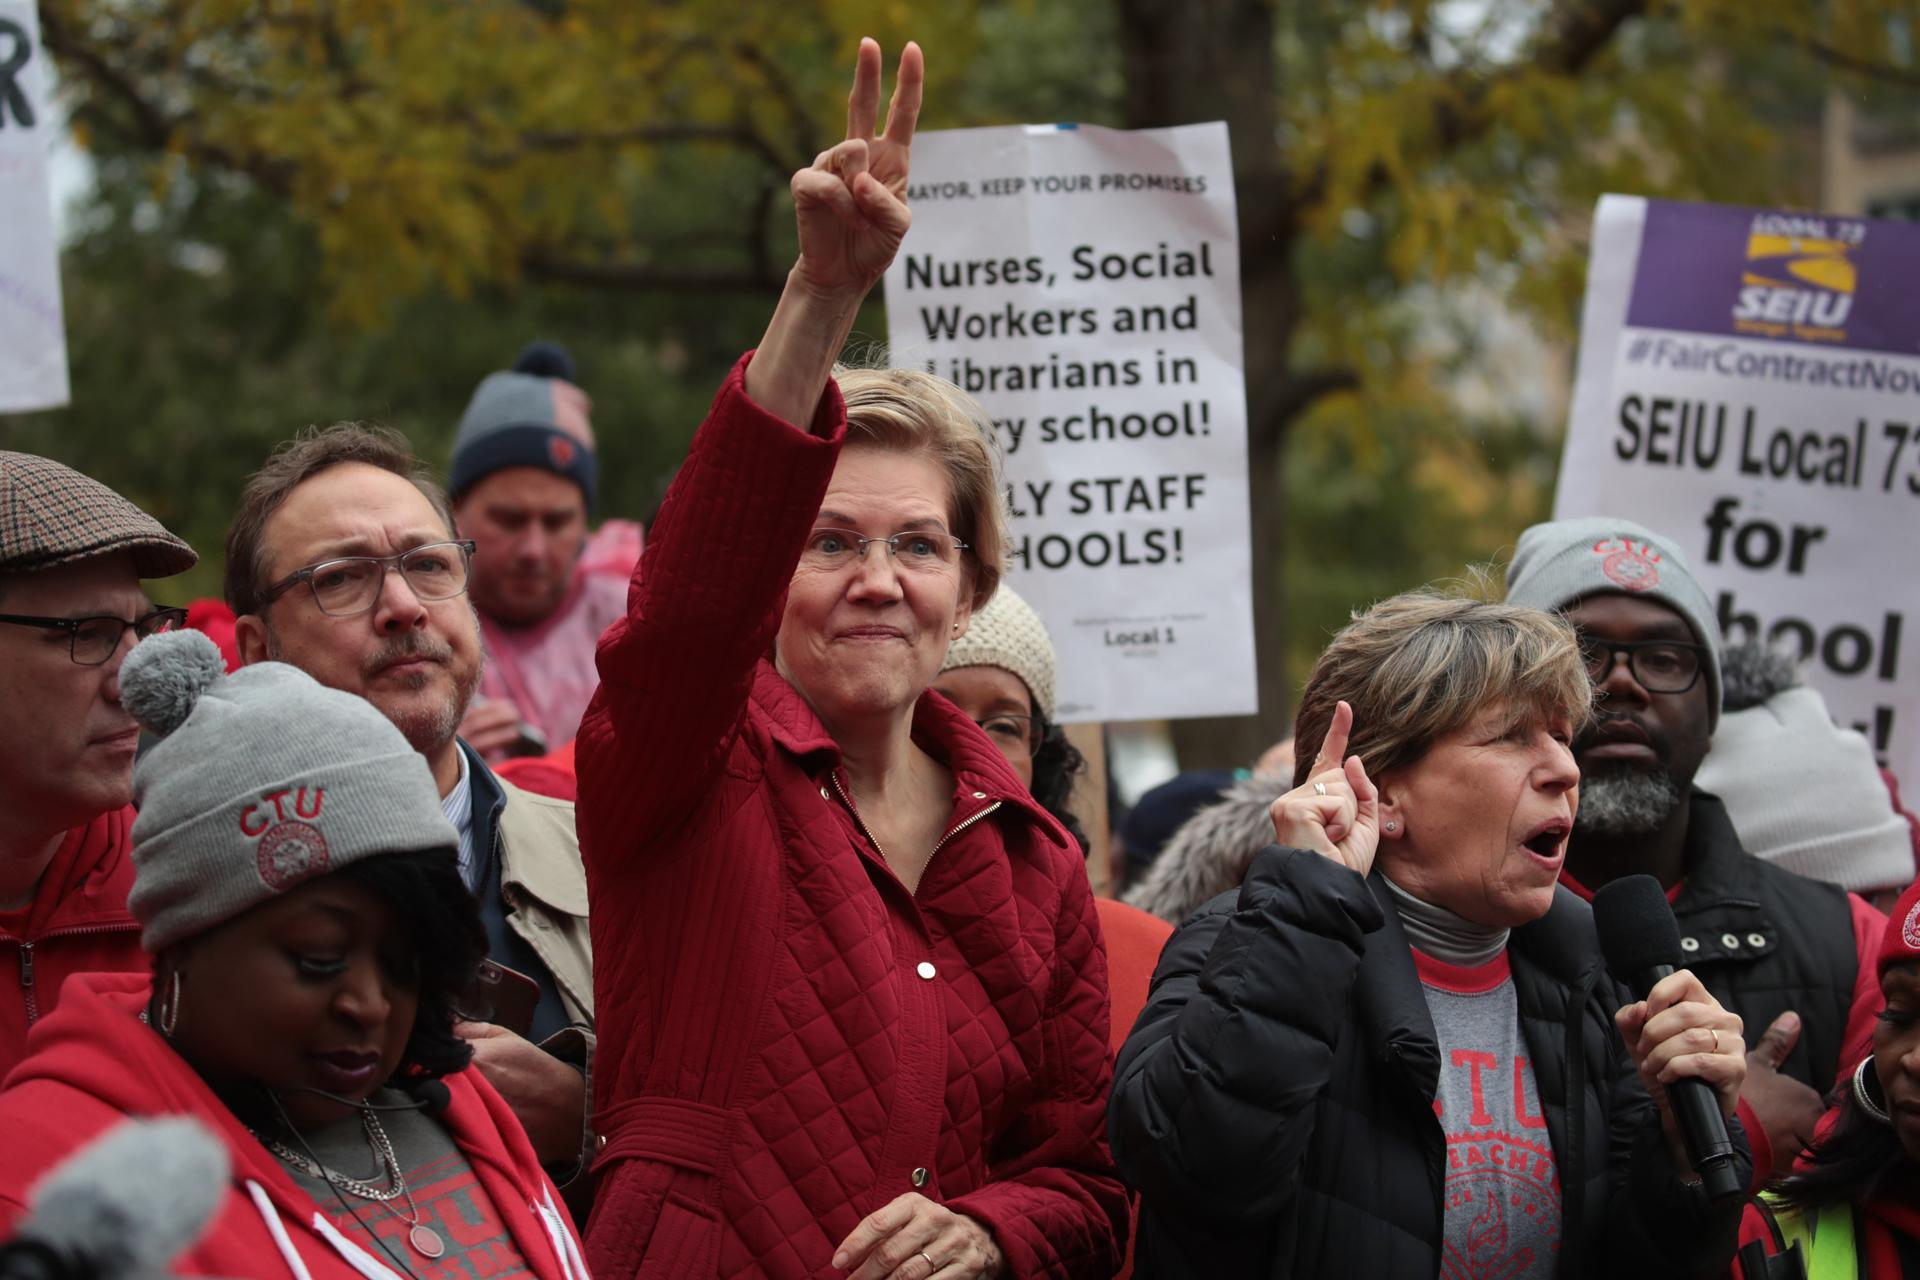 Democratic presidential candidate Elizabeth Warren showed her support for striking Chicago school teachers on Tuesday. The Democratic presidential race seems to be boiling down to a single question.